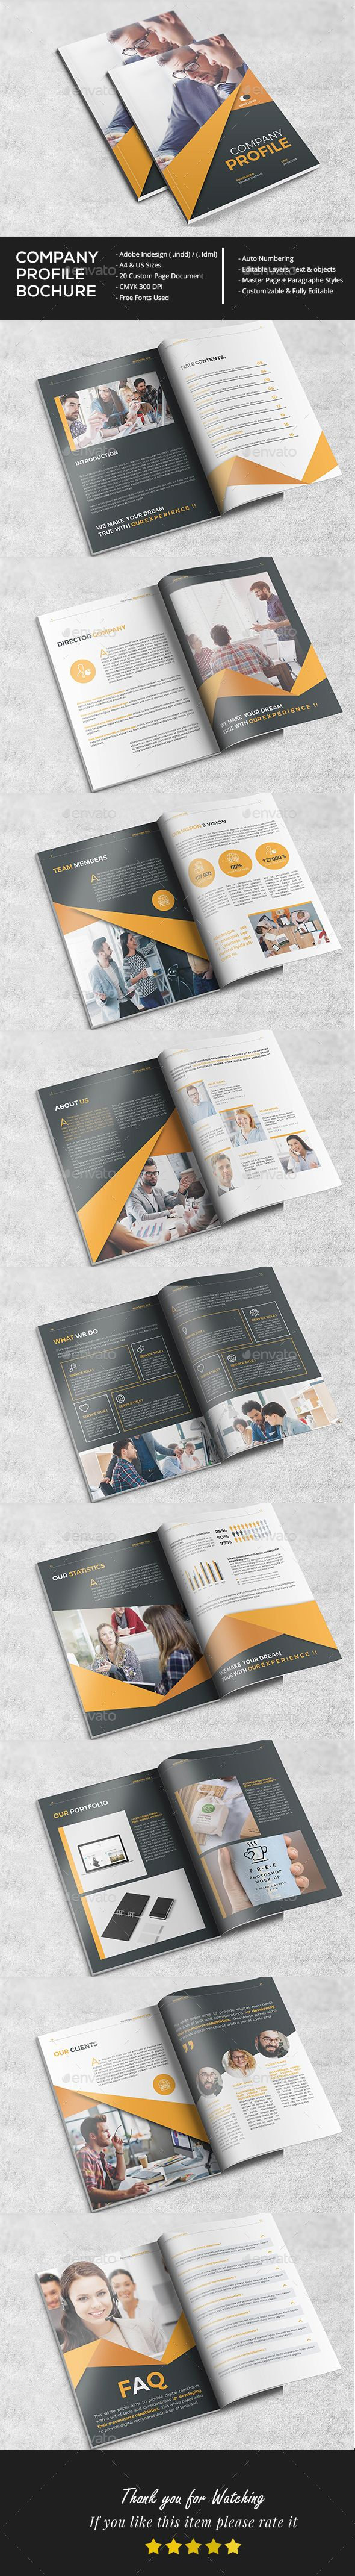 You can use this Professional company profile Brochure Design for several activities: Business,corporate,Marketing, construction, travel, mobile app, photography, real estate, etc. search tag: #Stylish #Company #Profile - #Brochures #Print #Templates